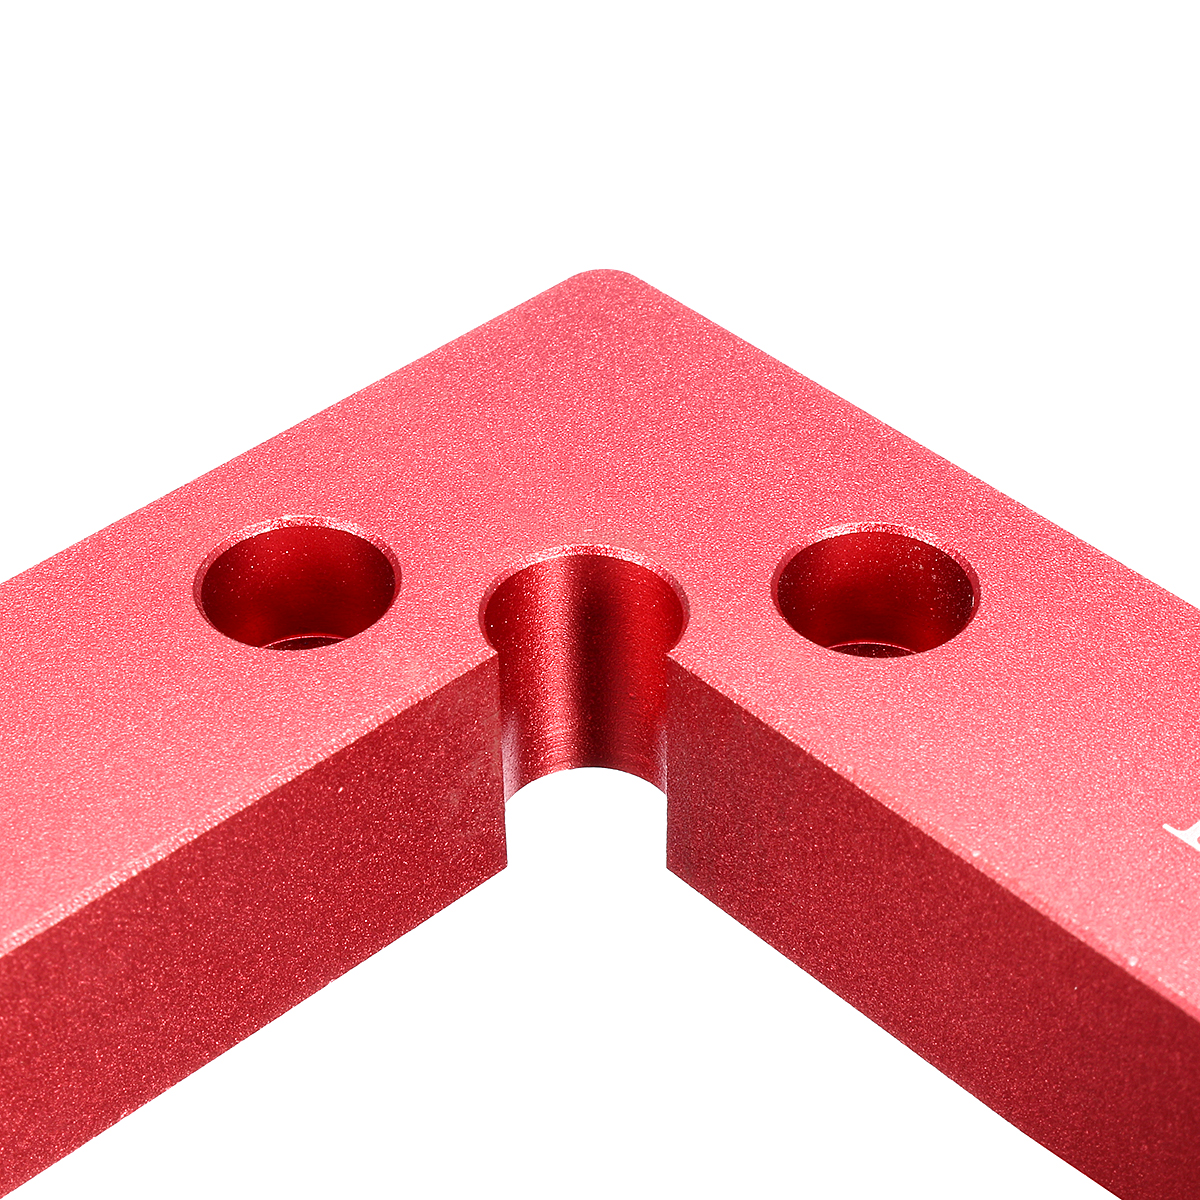 90 Degree Precision Machinist Clamping Square Positioning Right Angle Ruler Clamping Measure Tools